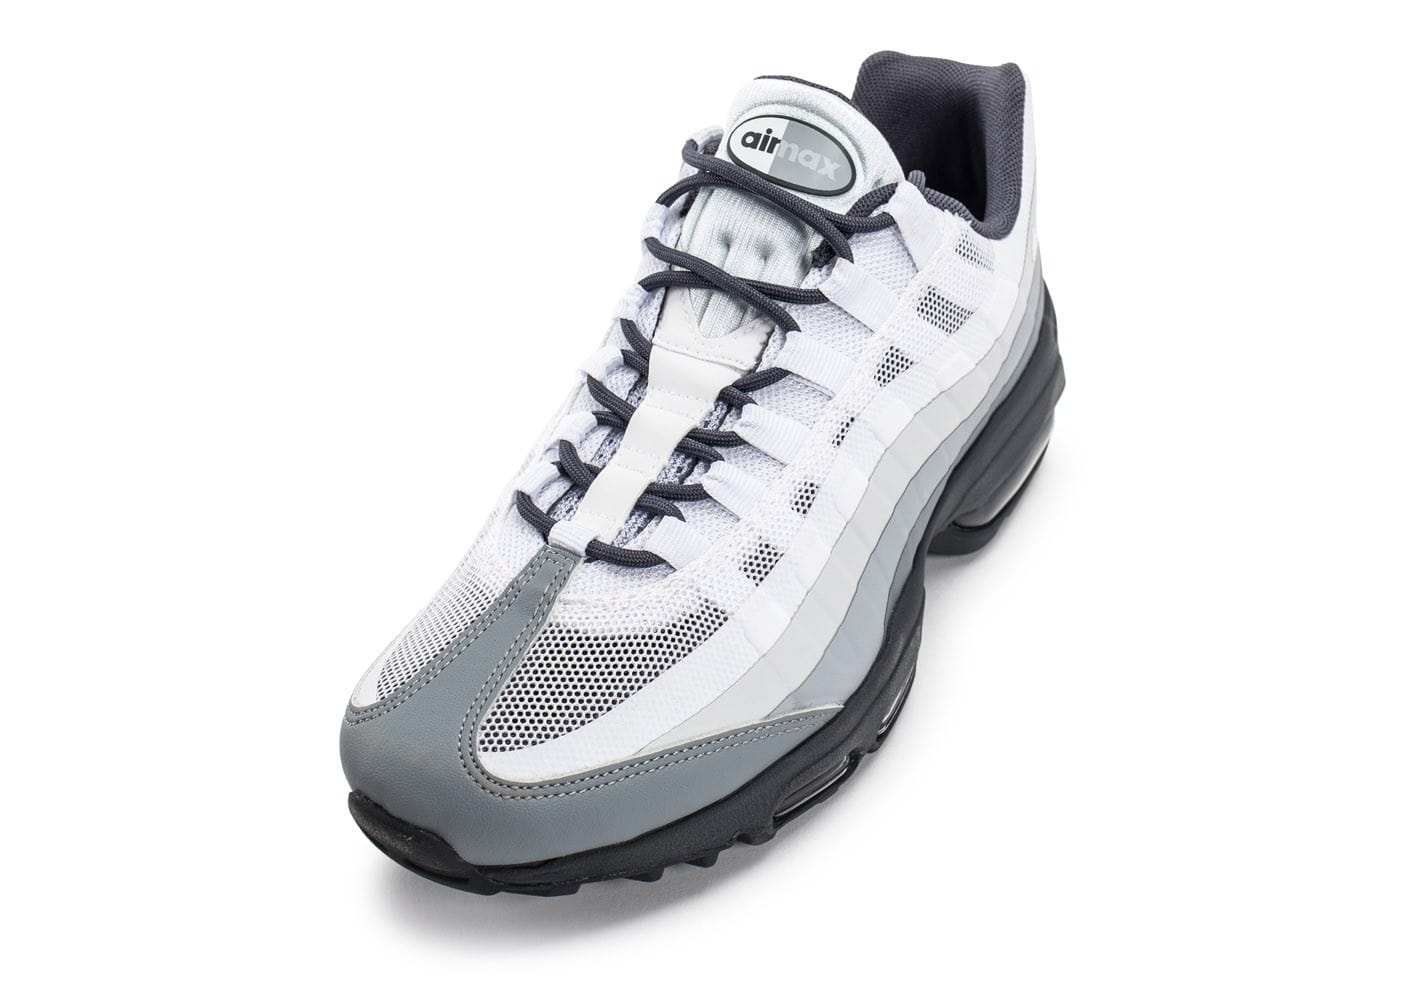 promo code 40f77 544ba ... chaussures nike air max 95 ultra blanche et grise vue arriere .